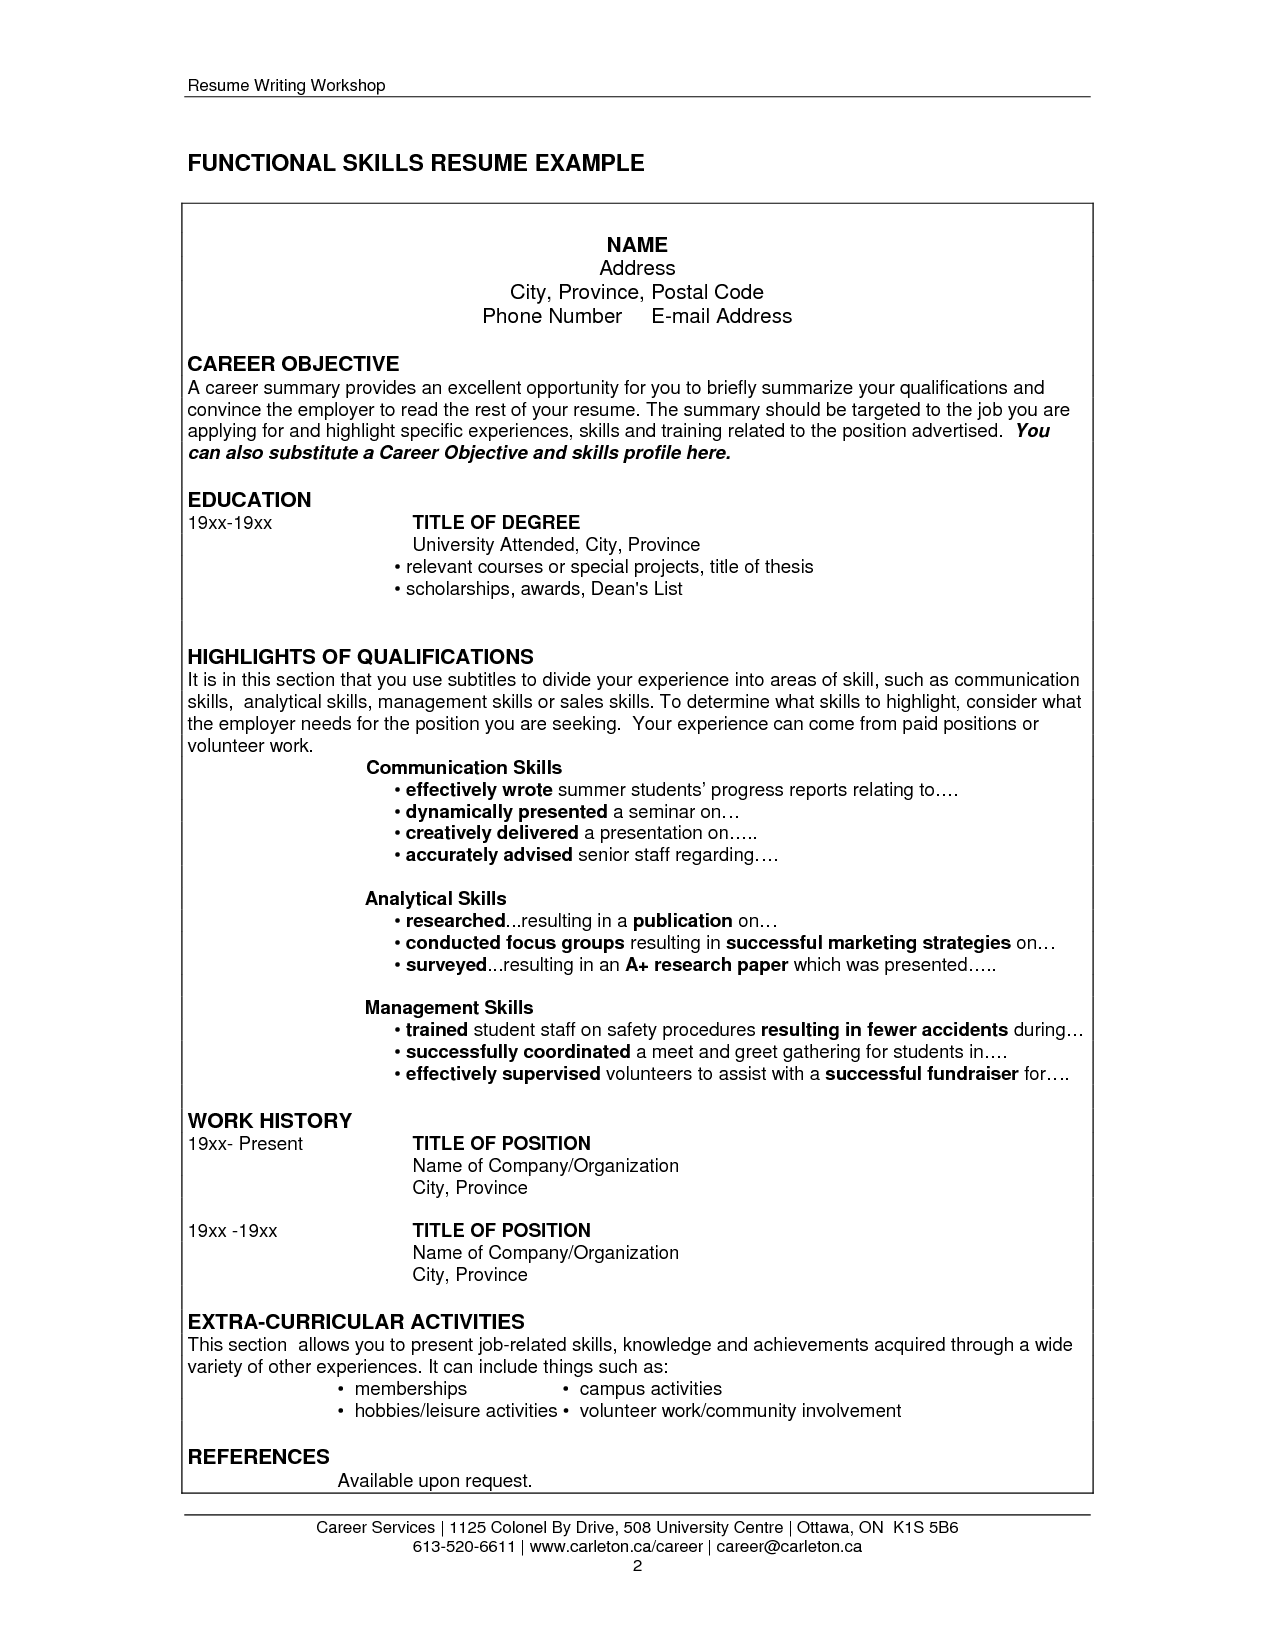 Skills And Abilities On A Resume Image Result For Skills Resume Format  Business  Pinterest